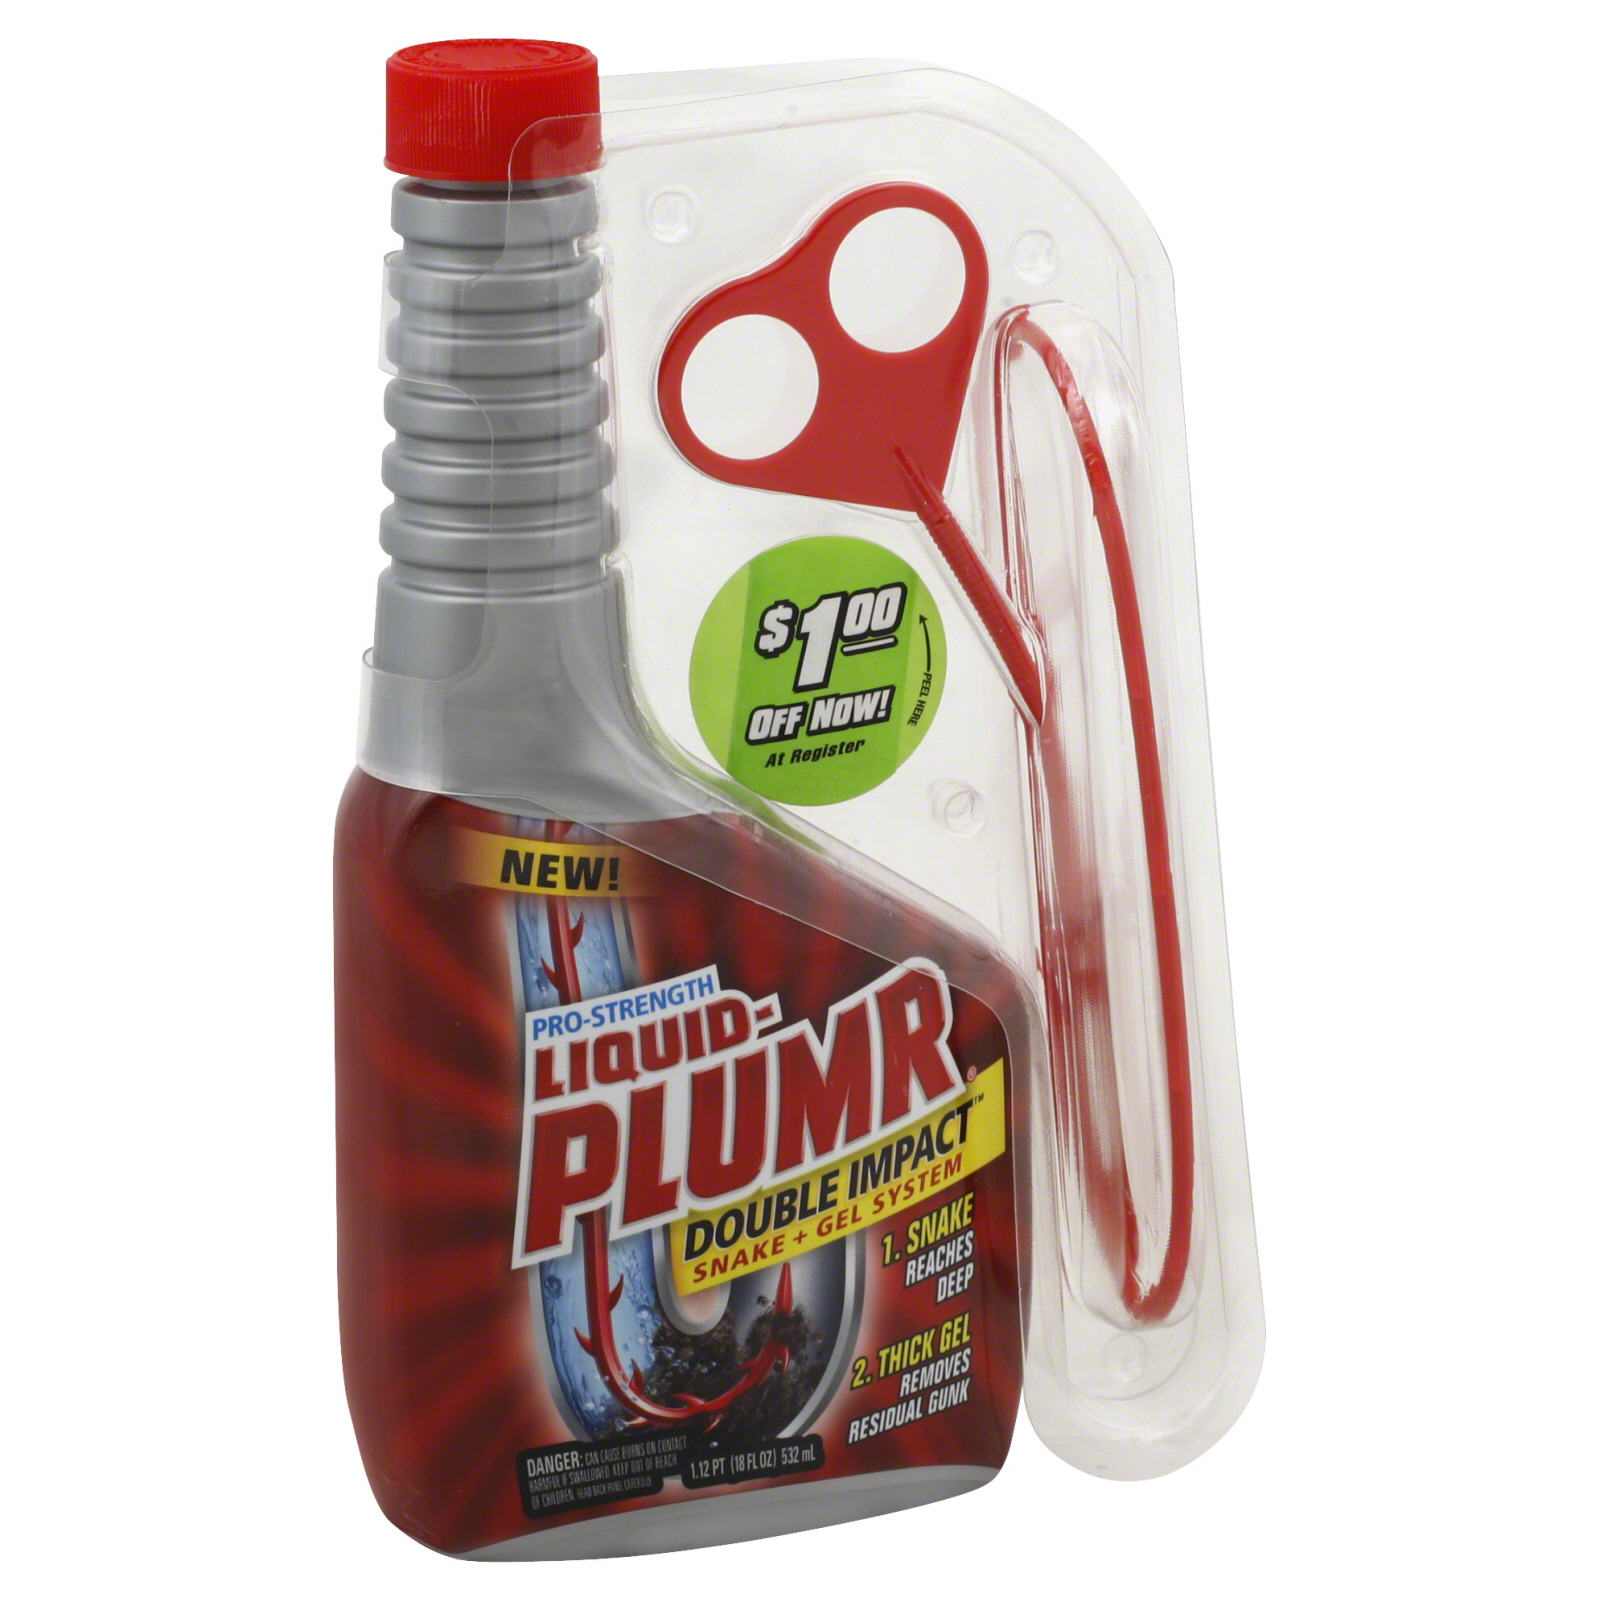 Liquid-Plumr Professional Strength Double Impact 18 oz PartNumber: 029W004305550001P KsnValue: 4305550 MfgPartNumber: 30708